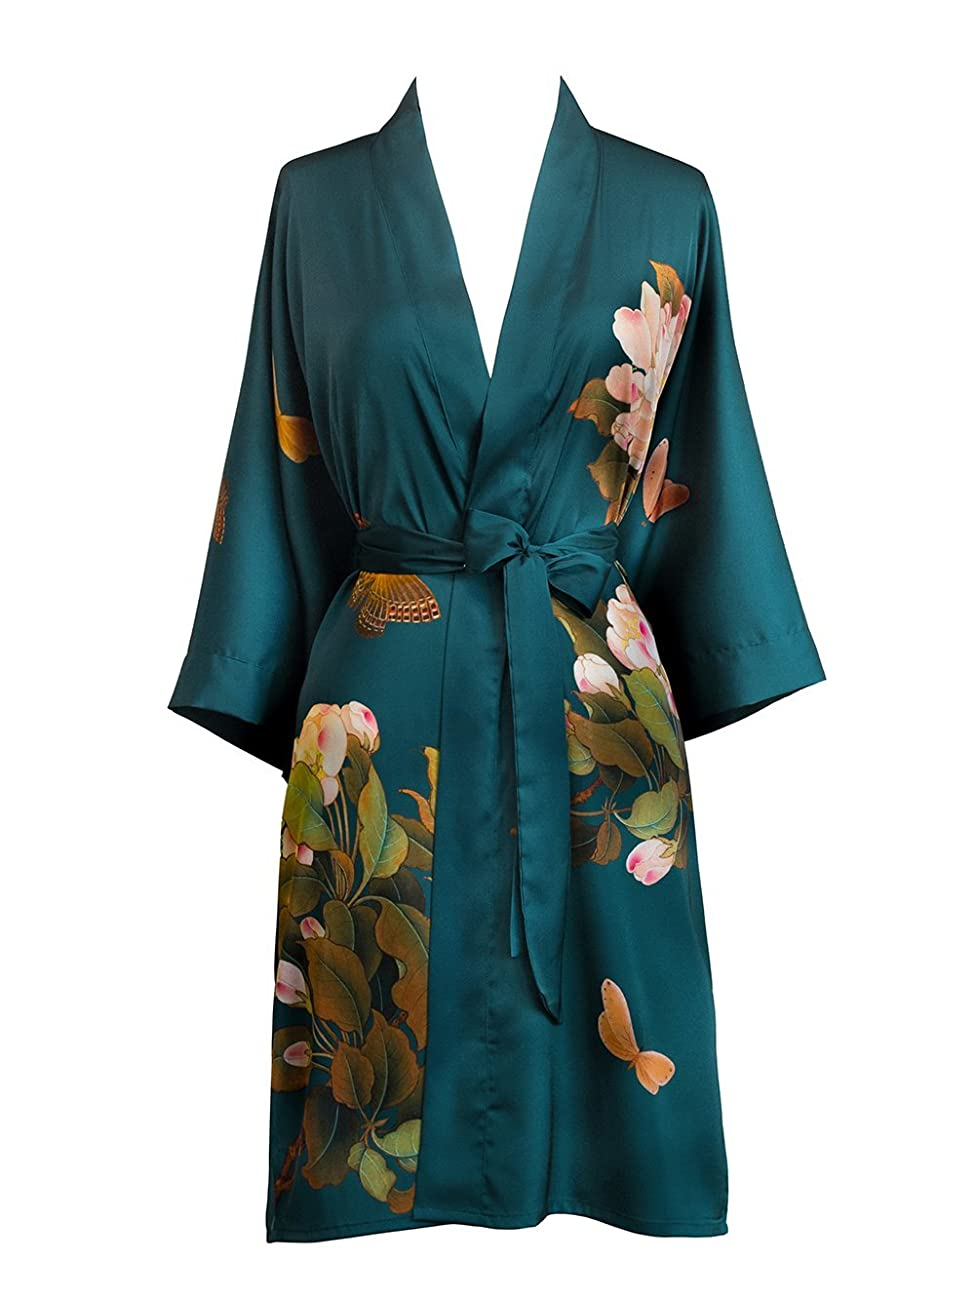 Old Shanghai Women's Kimono Robe Short - Watercolor Floral 0